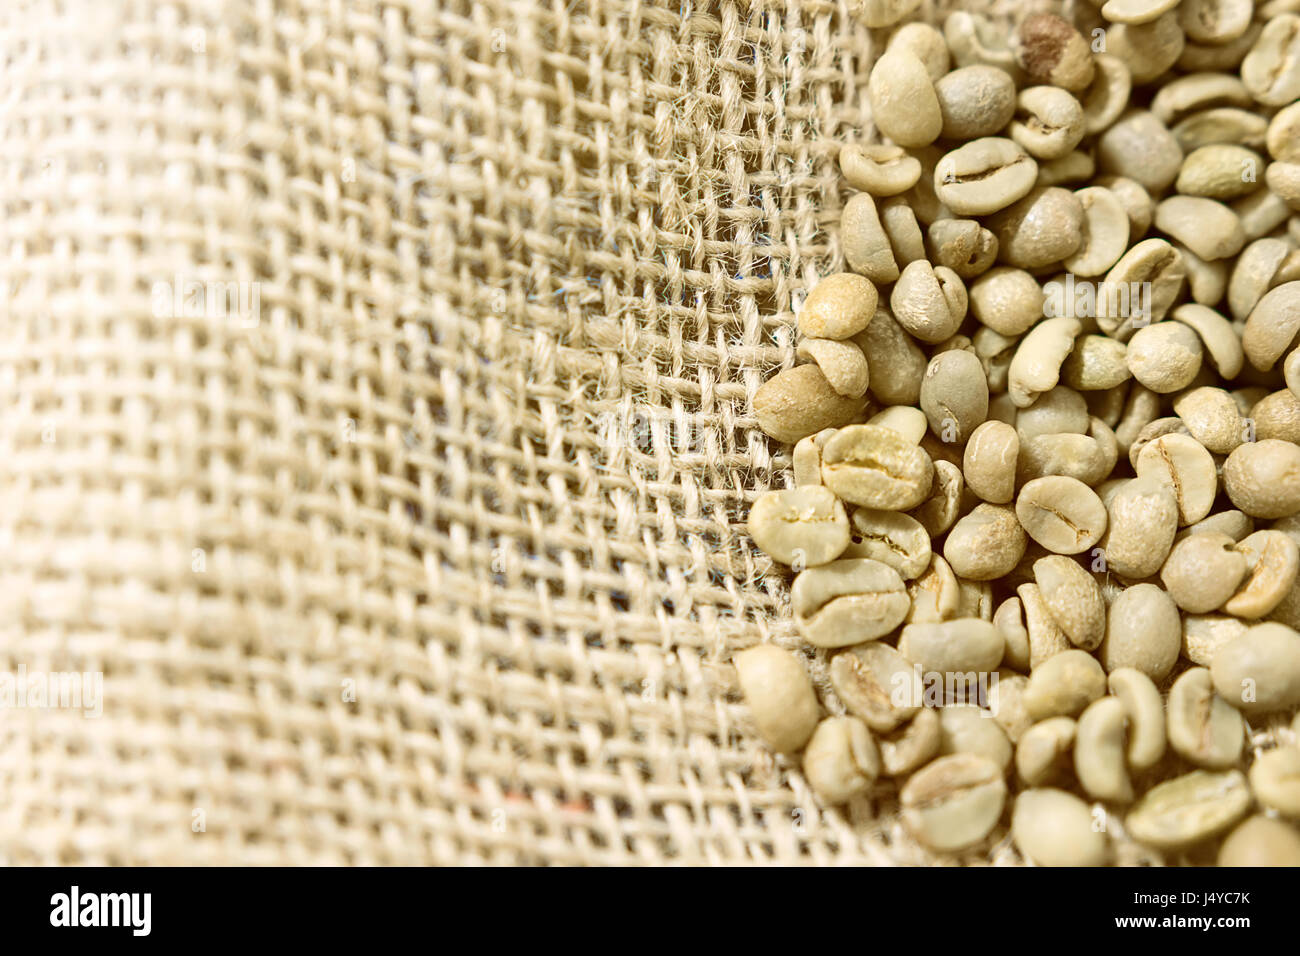 Green unroasted Coffee Beans in a sack. - Stock Image